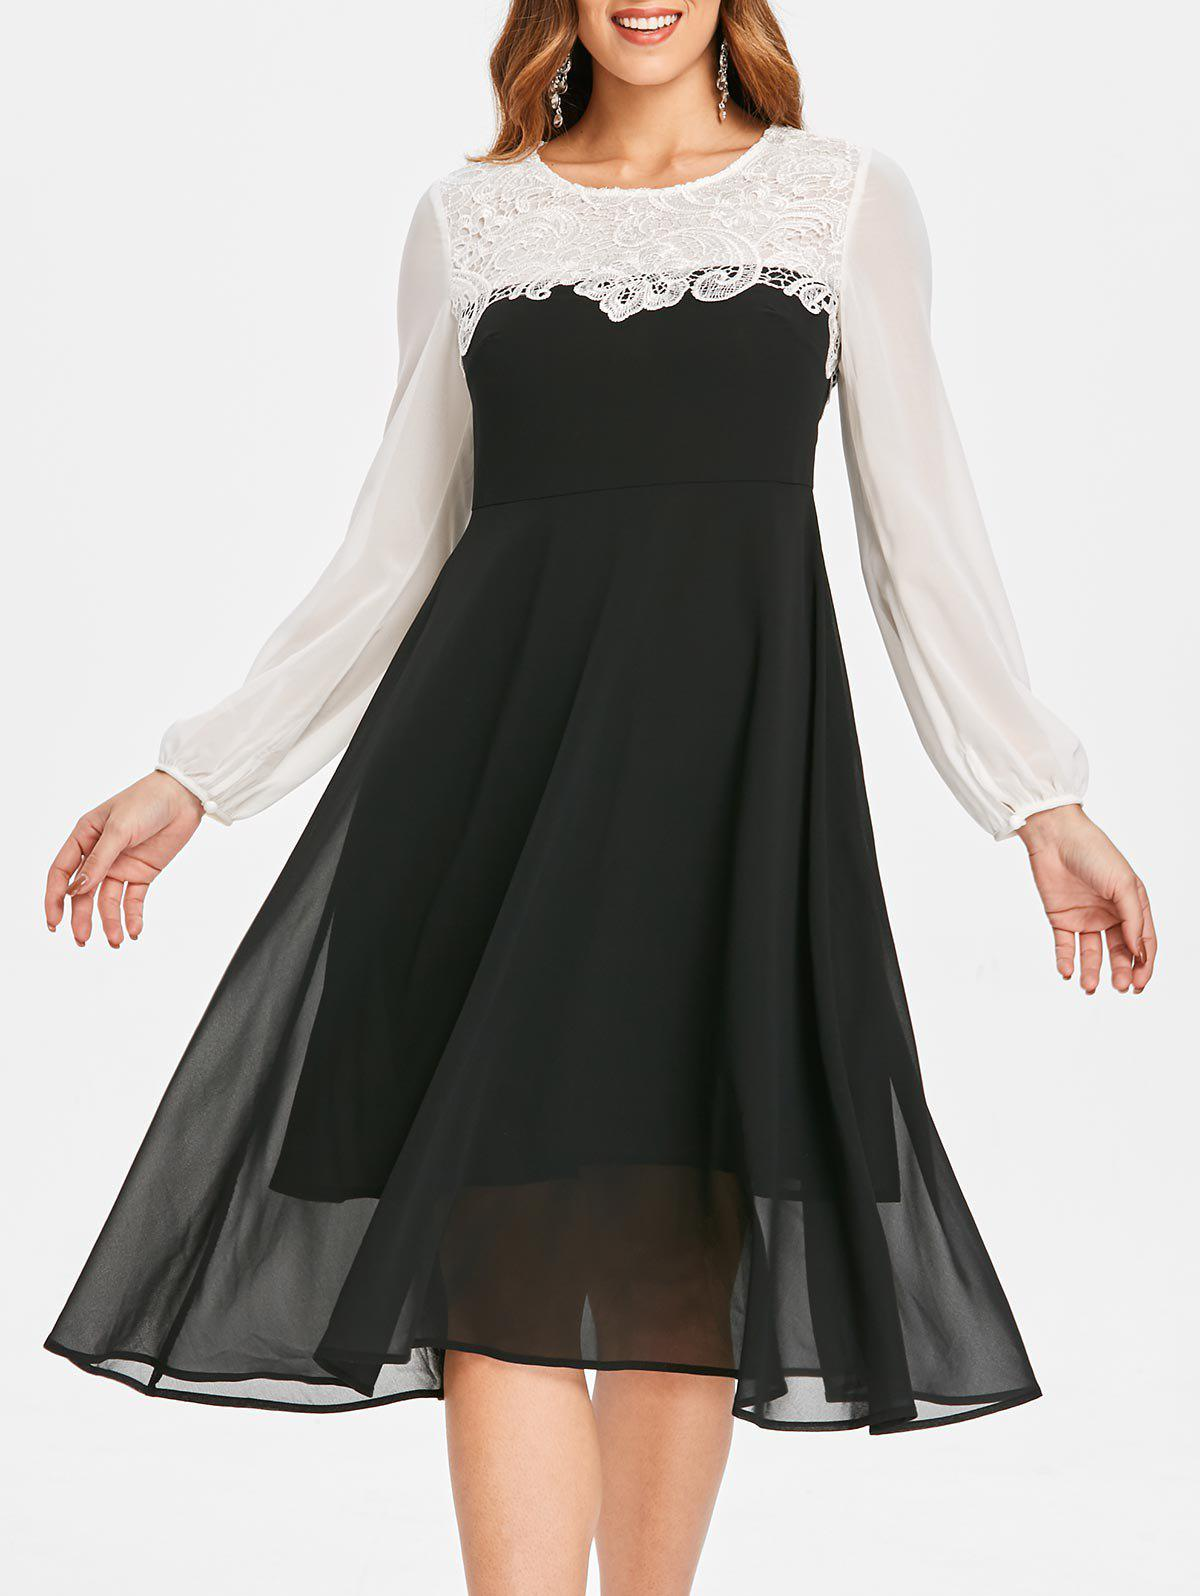 New Lace Panel Chiffon Flare Dress